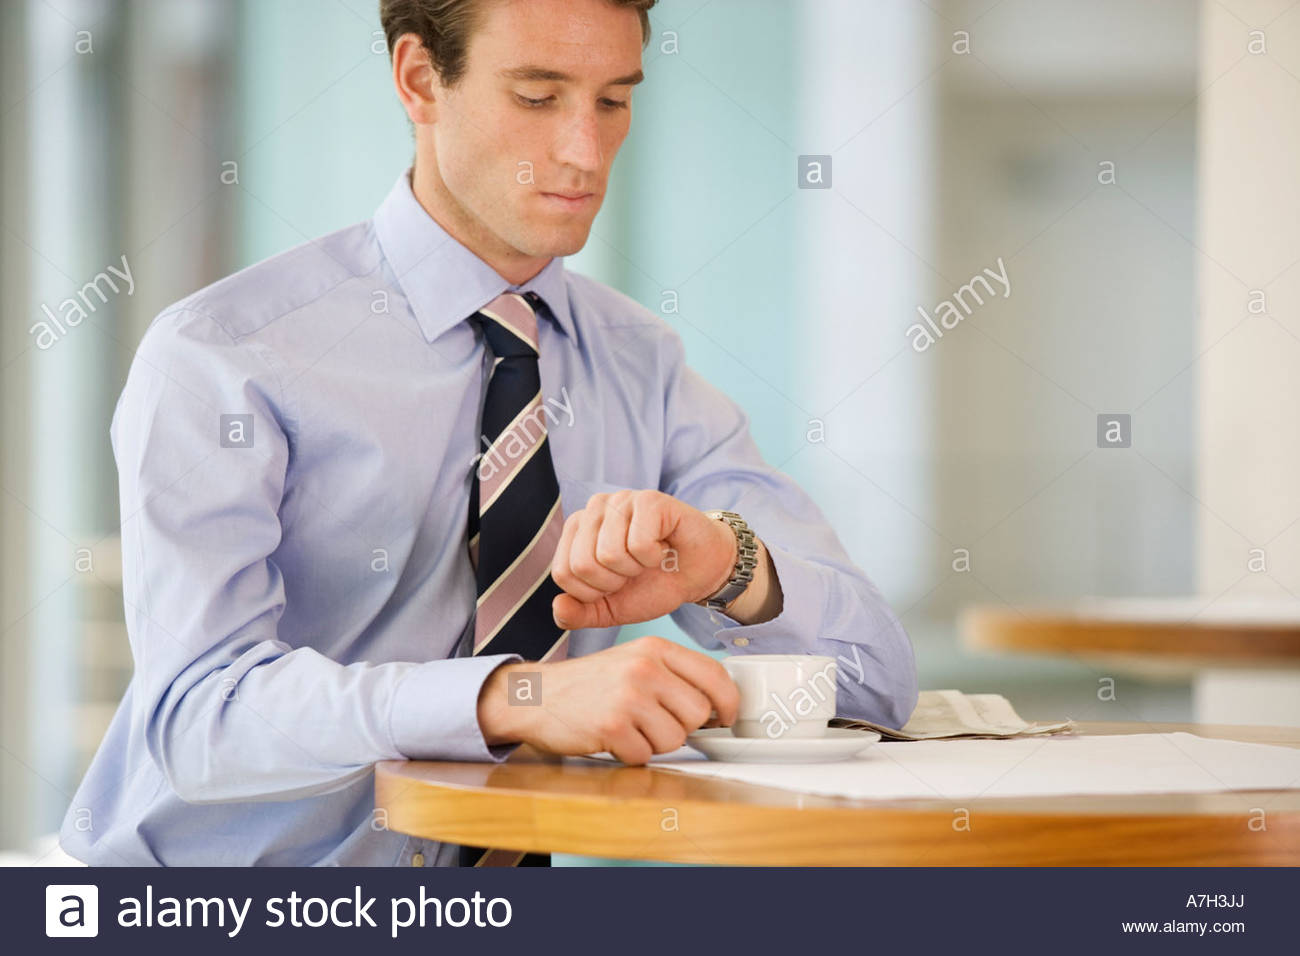 A businessman checking the time on his watch - Stock Image